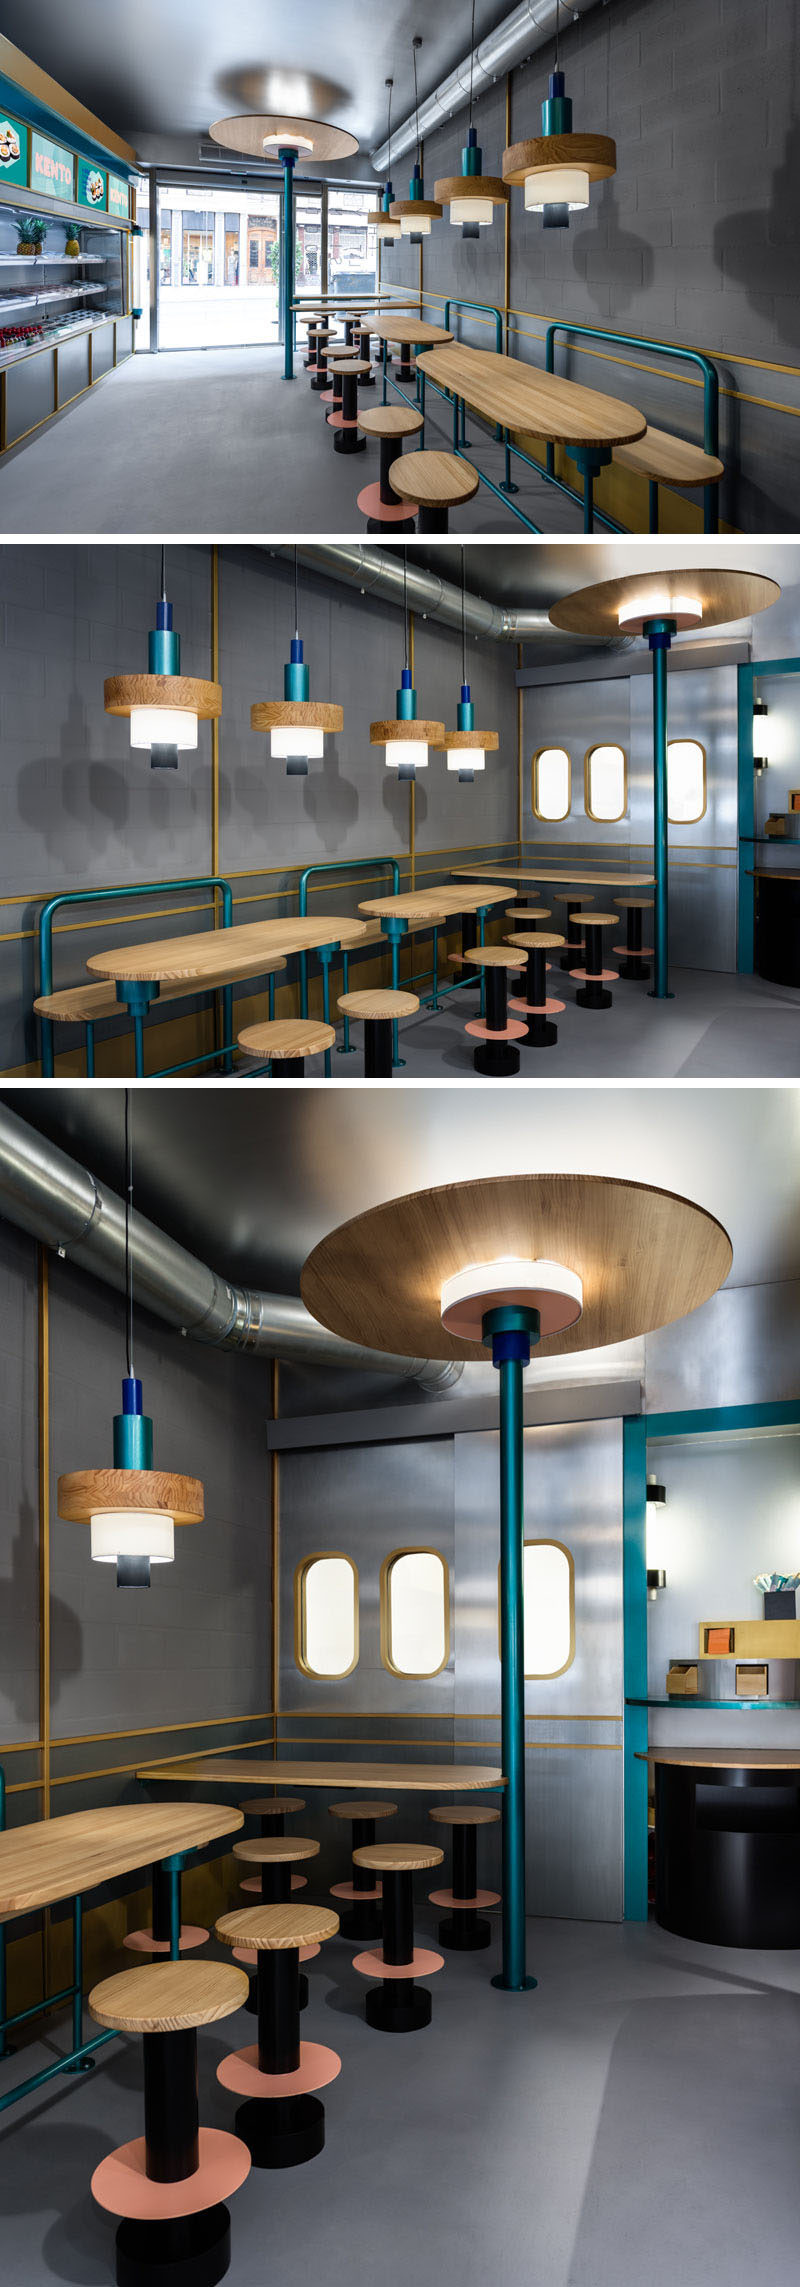 Masquespacio Have Designed The Interior Of A Takeaway Sushi Restaurant In Spain